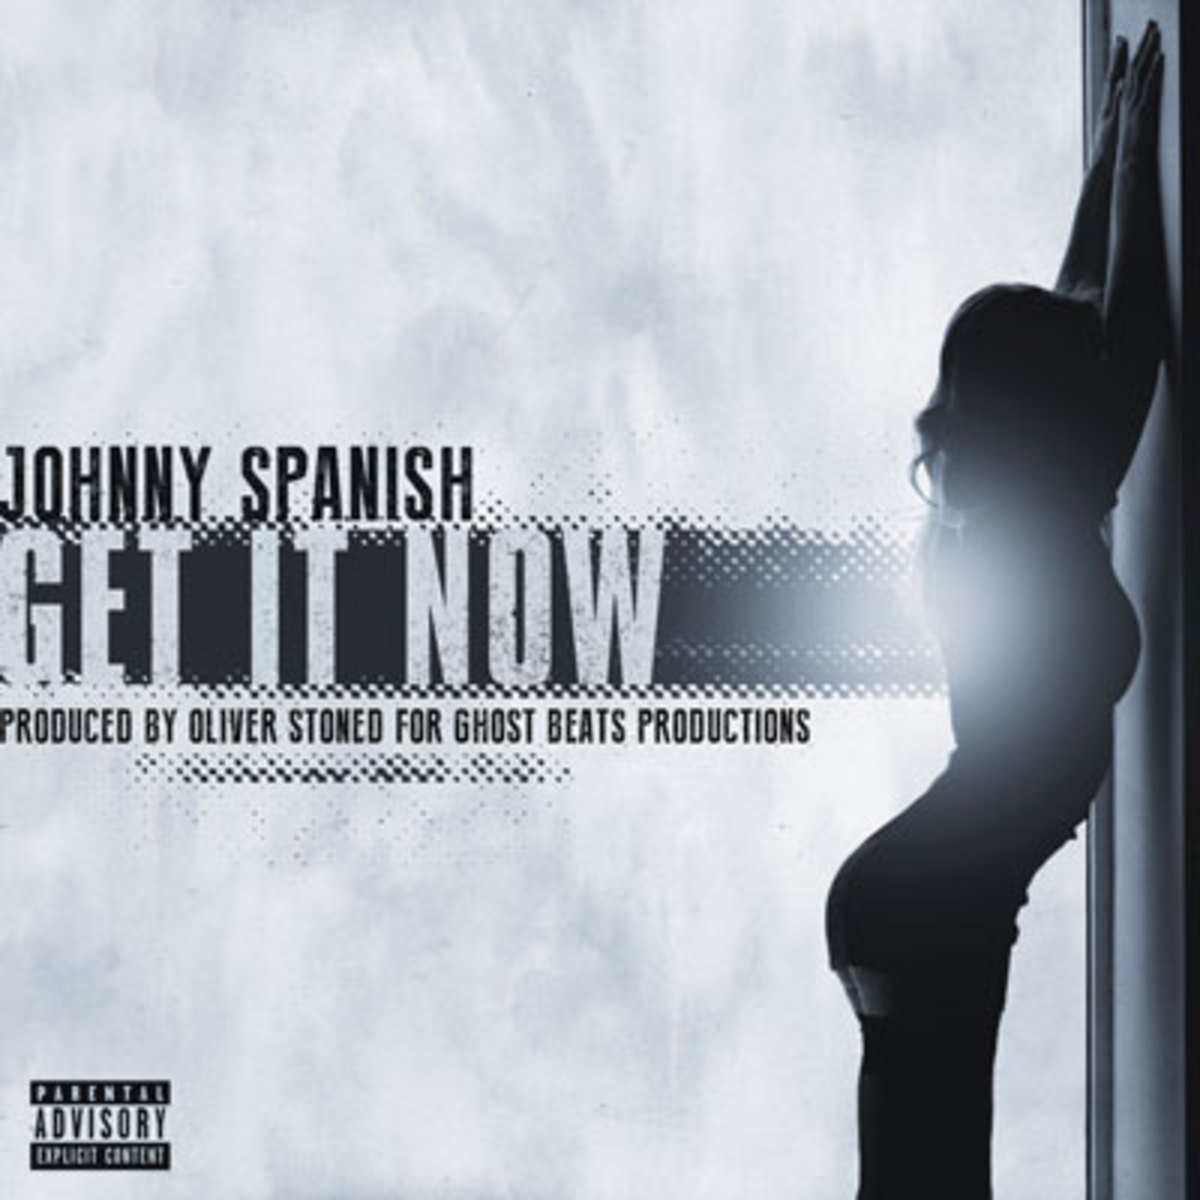 johnnyspanish-getitnow.jpg